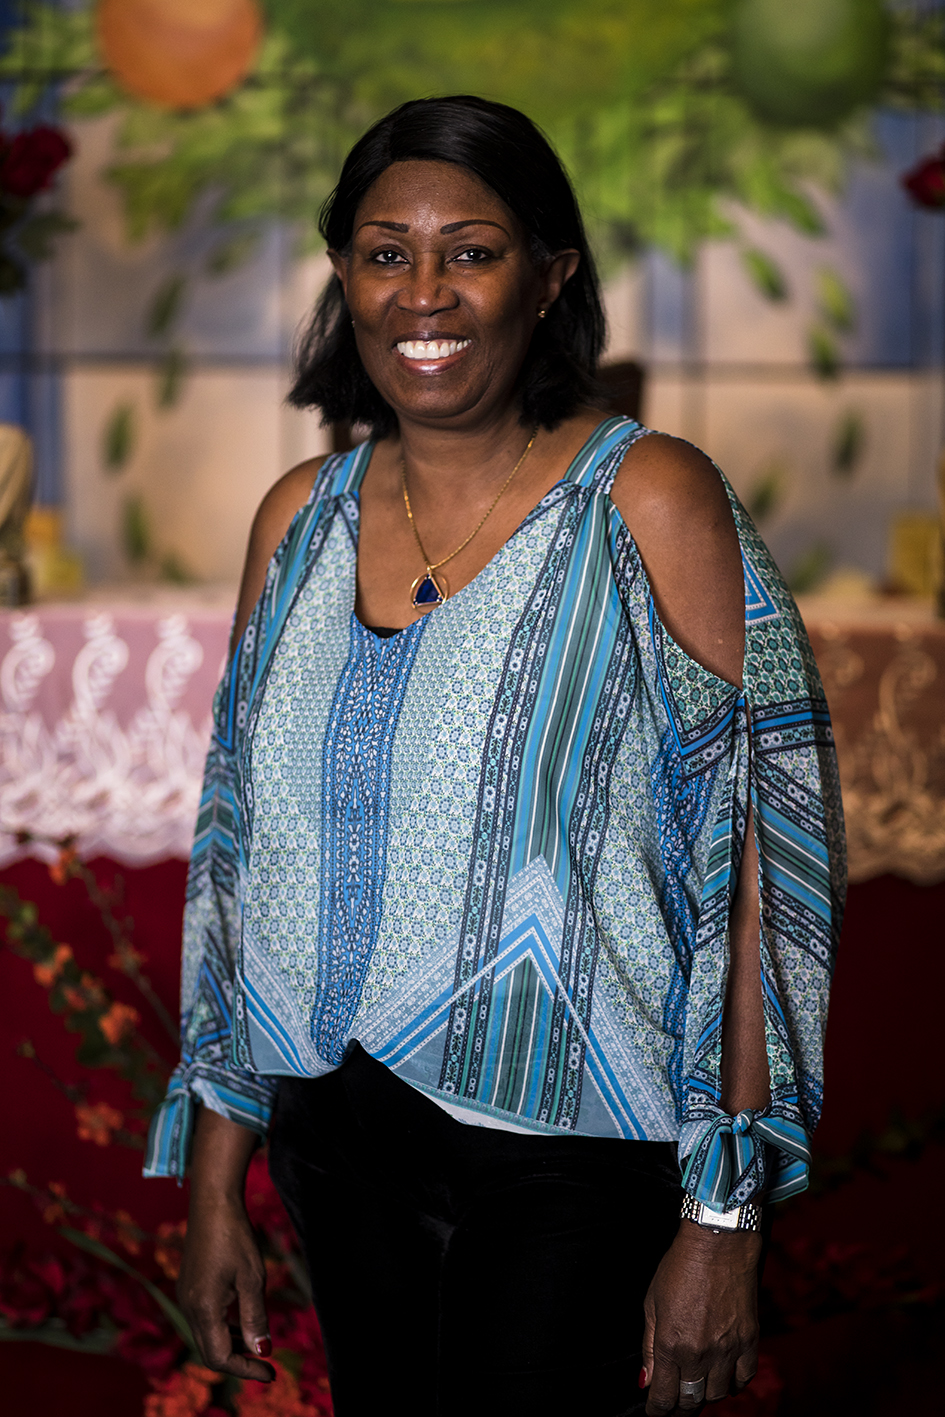 Gwendolyn Johnson   Seminarian Representative    Rev. Gwendolyn Johnson is a licensed professional Registered Nurse and ordained minister. She is a seminarian attending the Ascension Alliance Theological College.